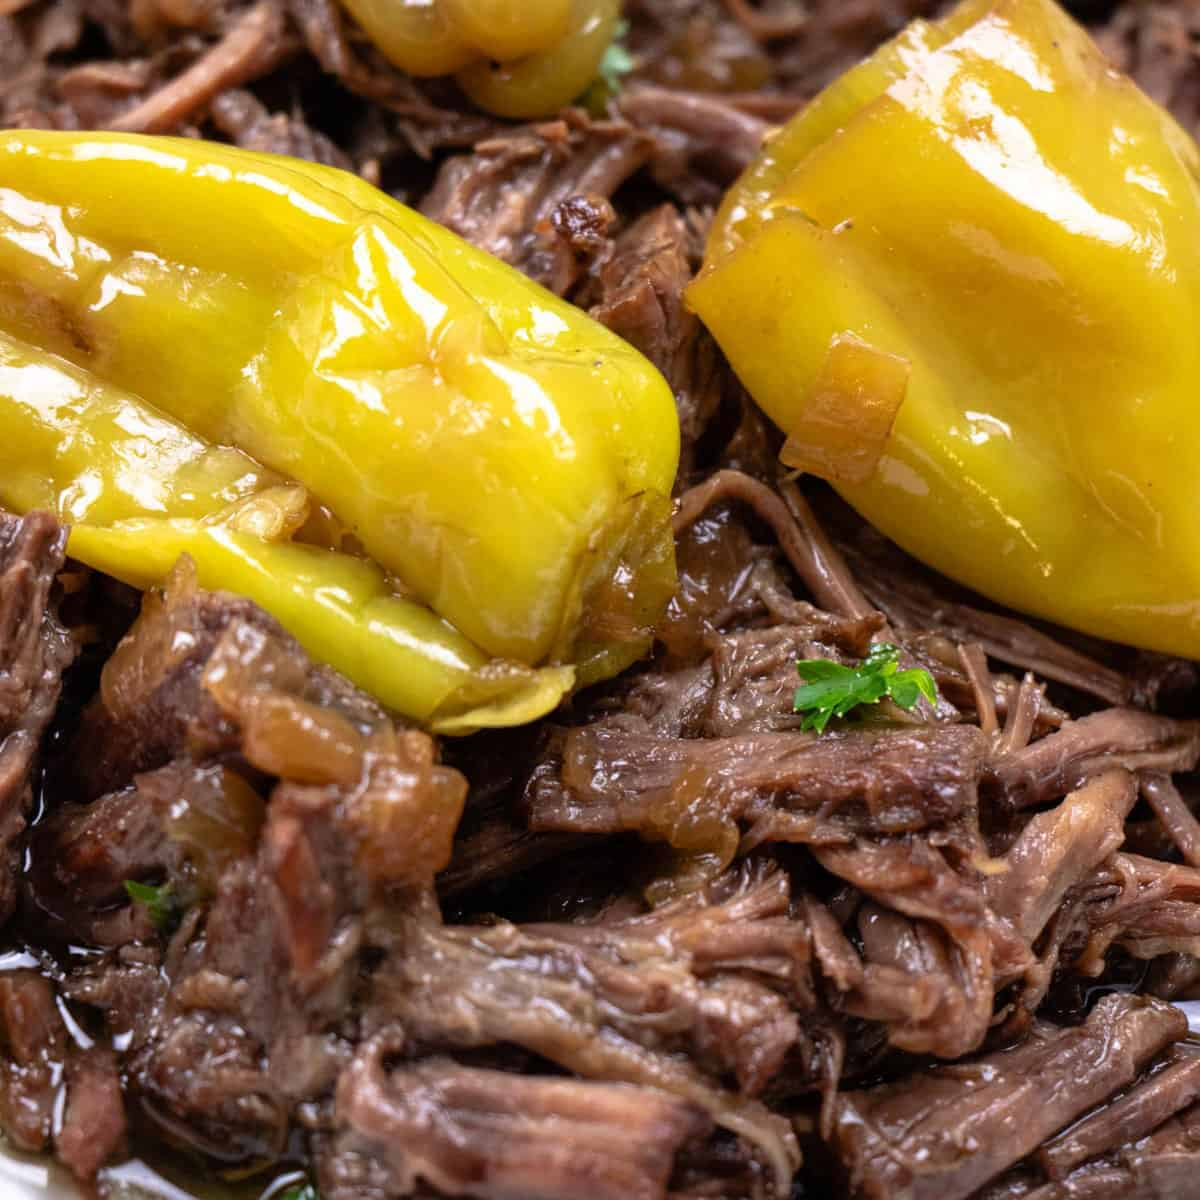 Shredded beef with pepperoncini peppers on top